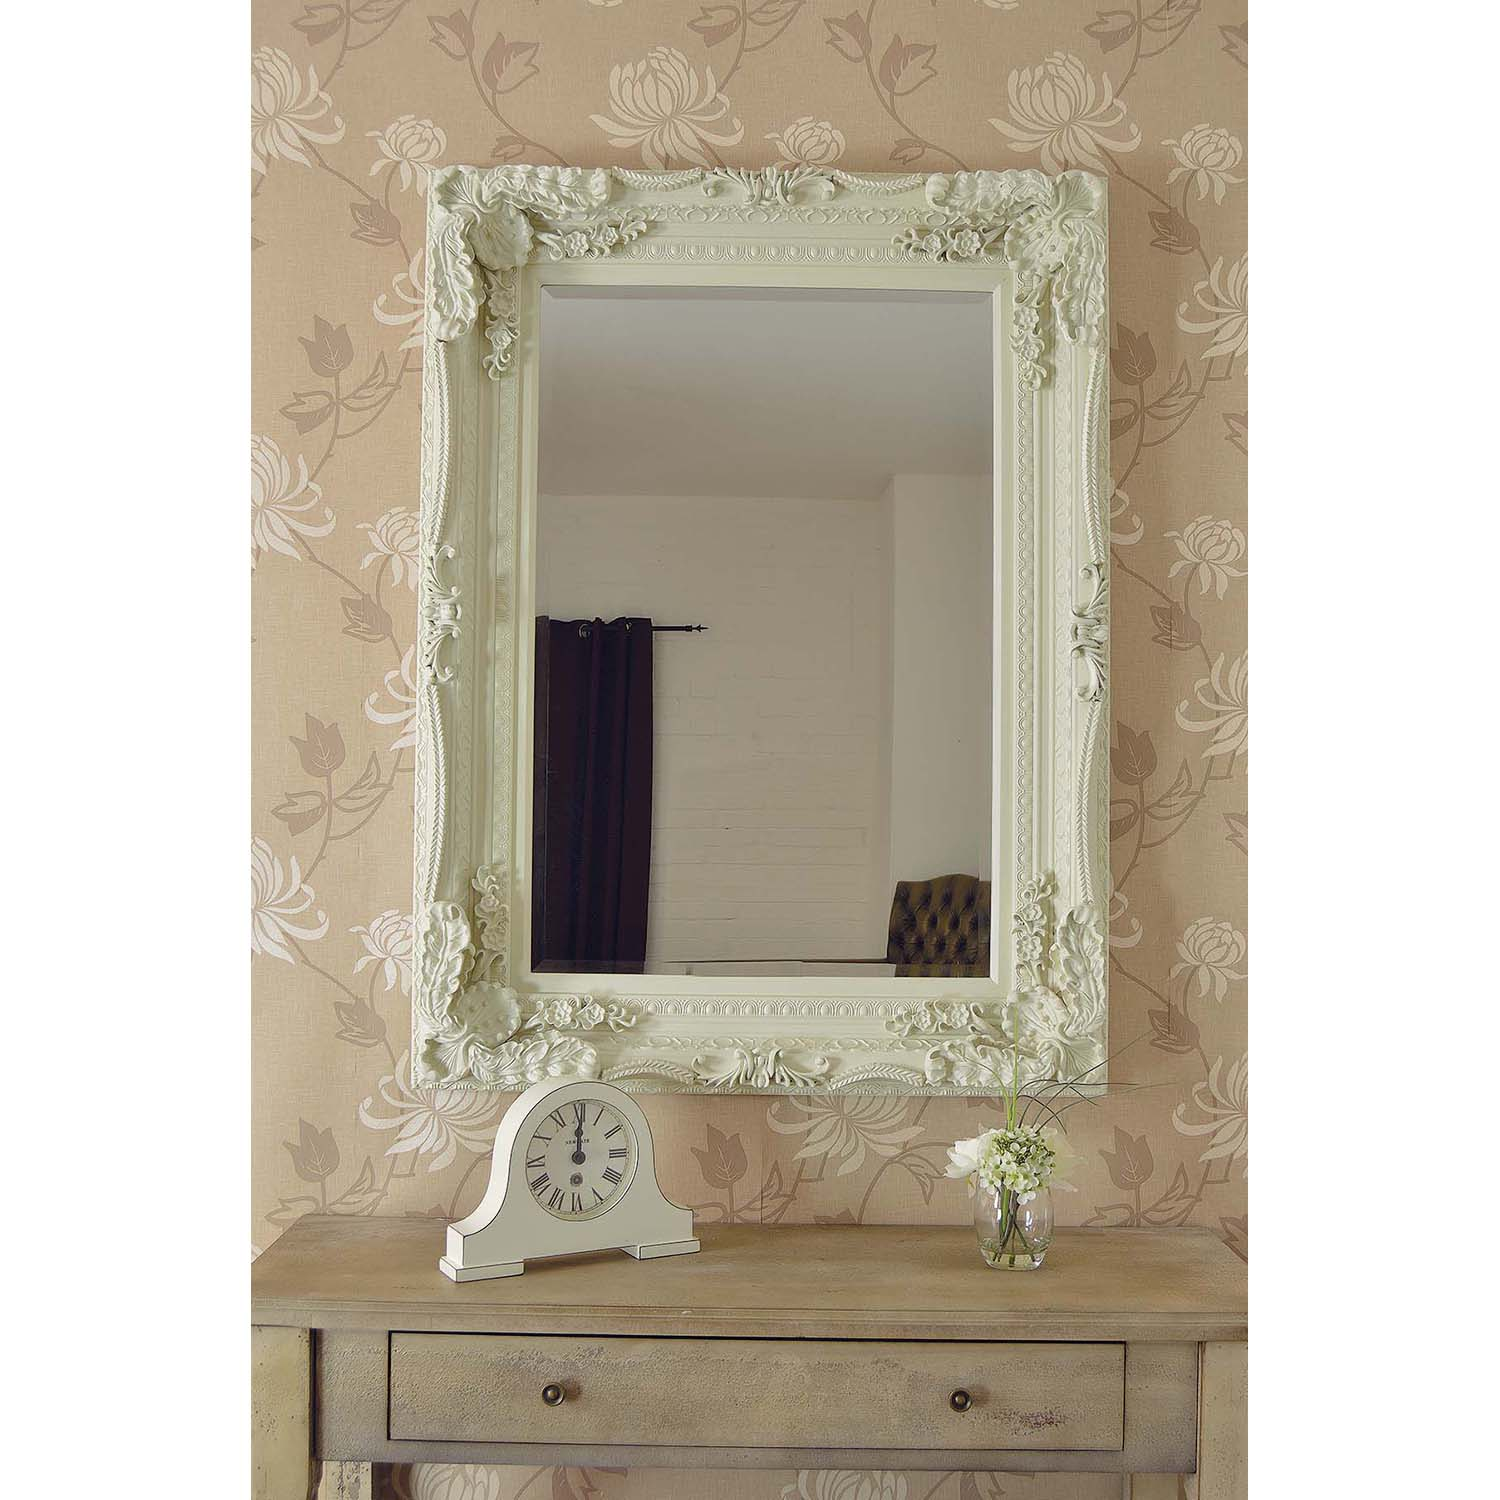 Image of Mirror Outlet Carved Louis Mirror, Cream